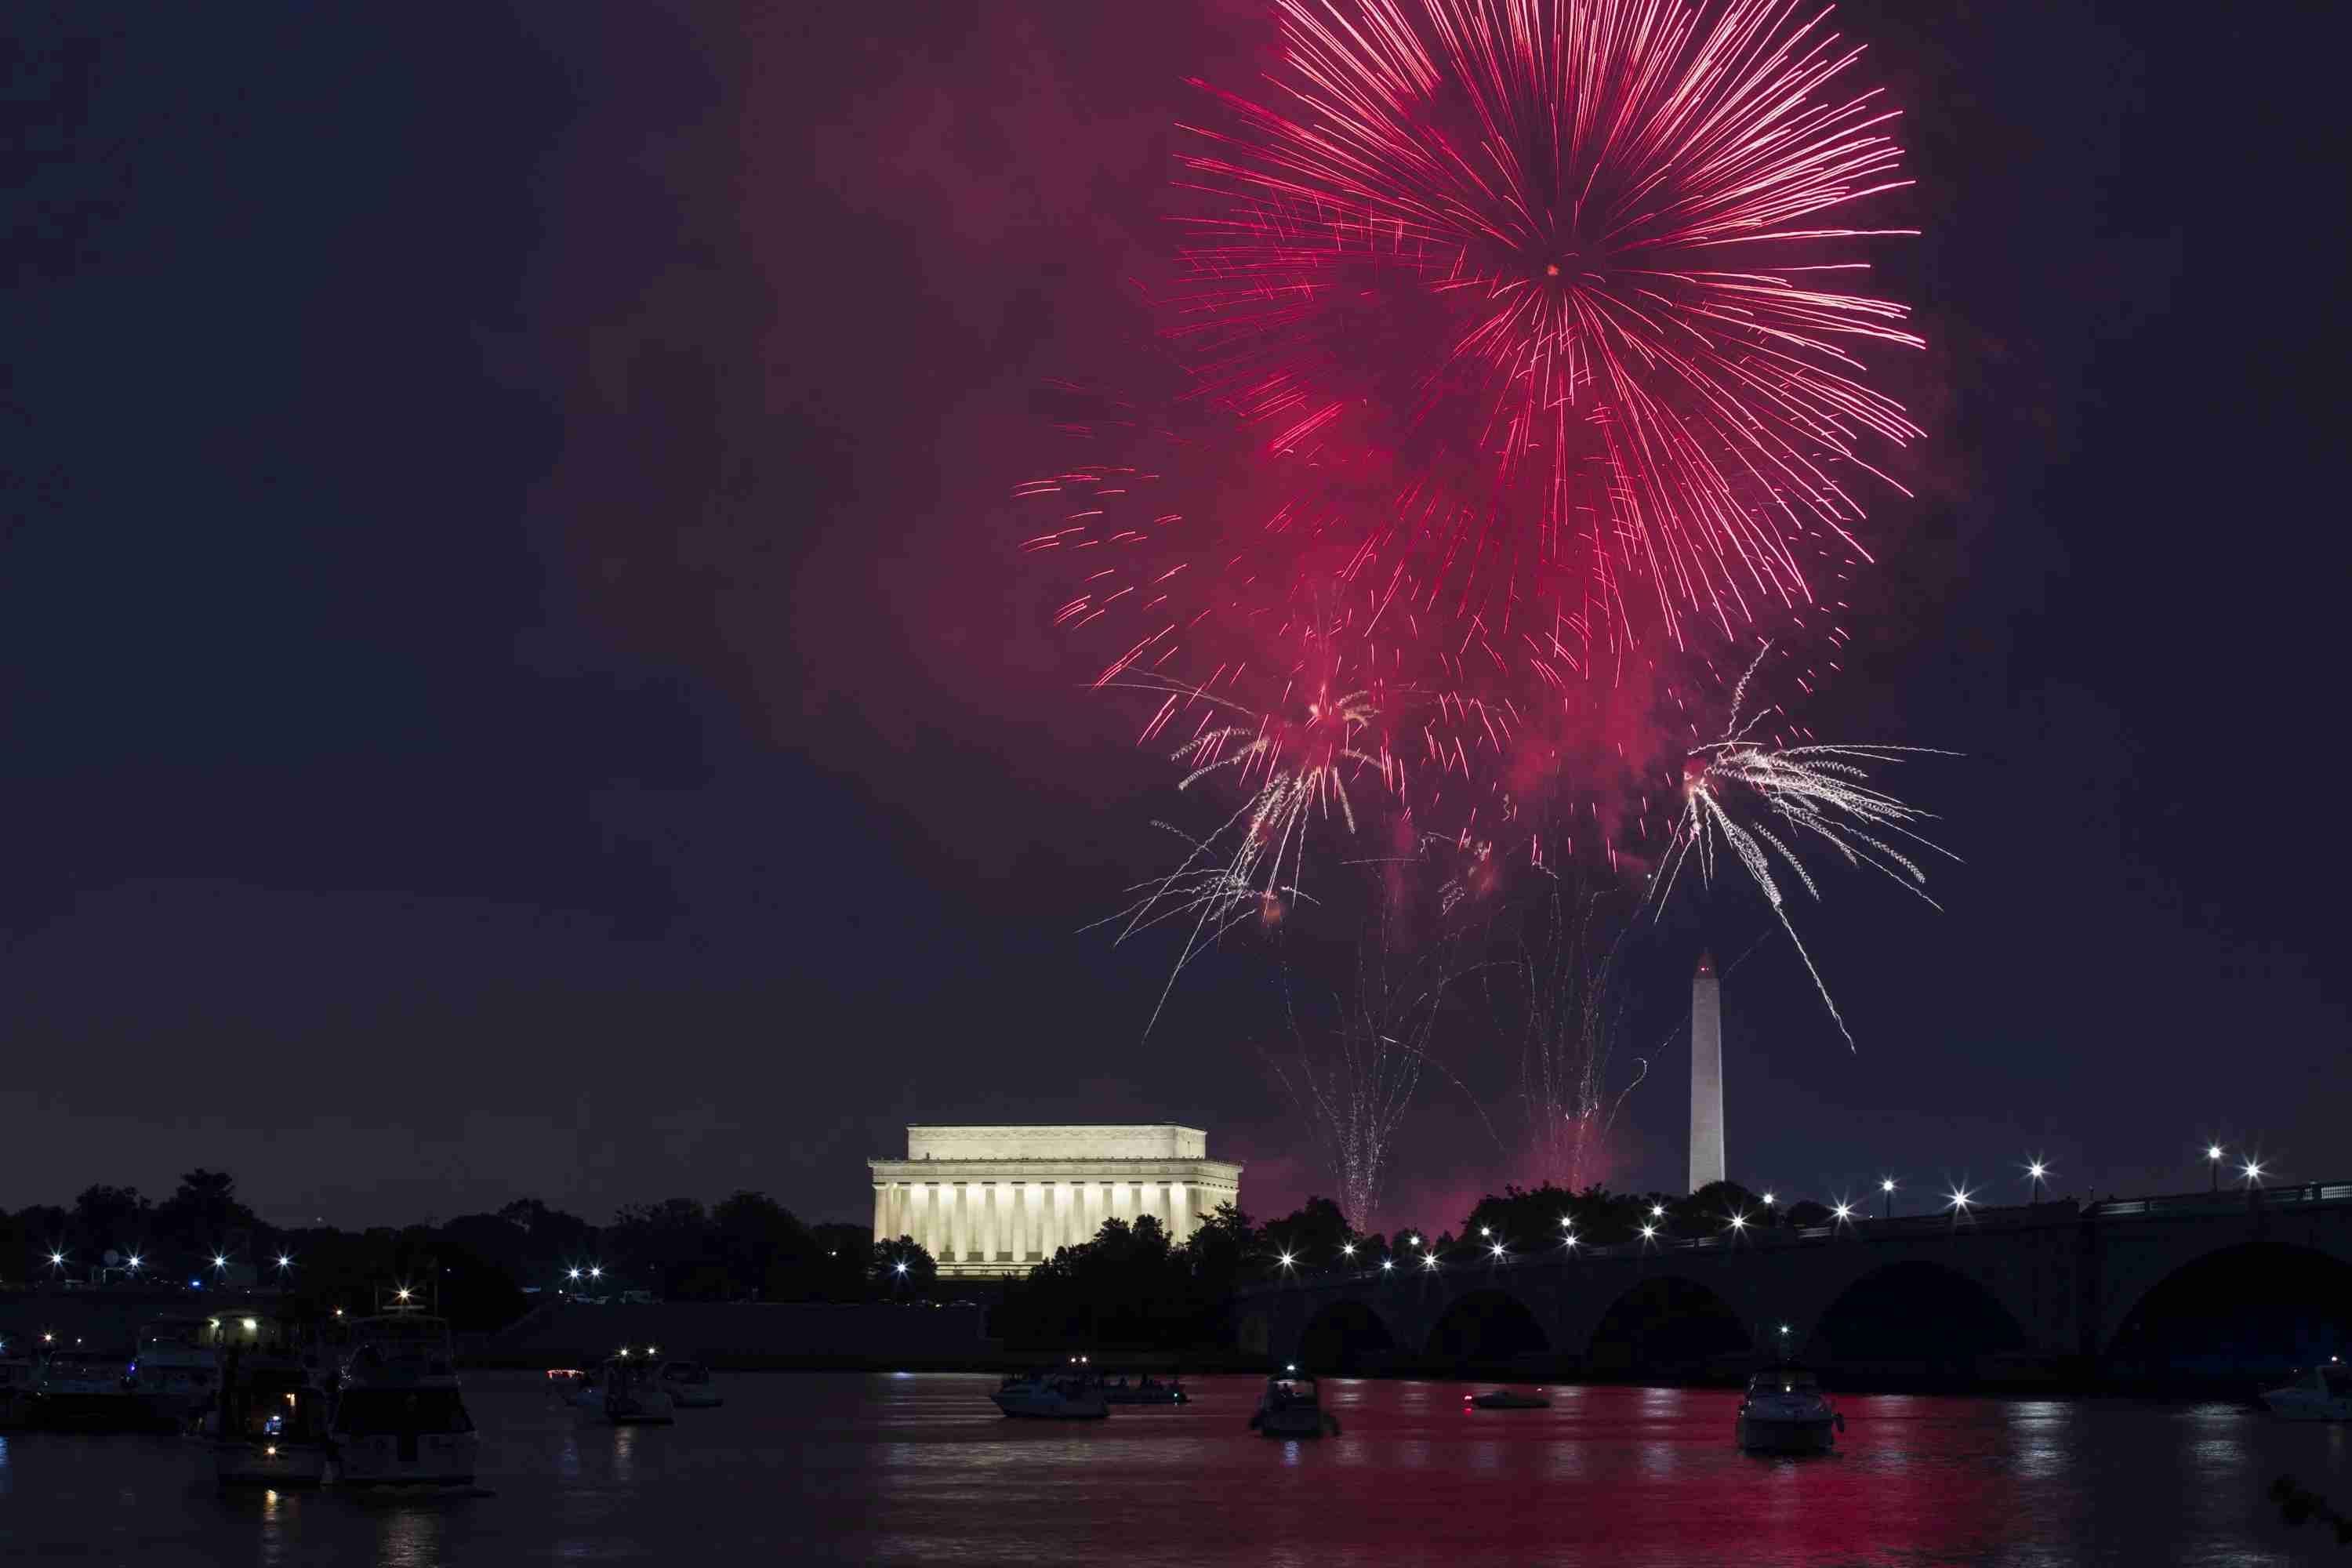 WASHINGTON, USA - JULY 4: Independence Day celebration fireworks explode in the air above the Lincoln Memorial and Washington Monument along the National Mall in Washington, USA on July 4, 2017. (Photo by Samuel Corum/Anadolu Agency/Getty Images)